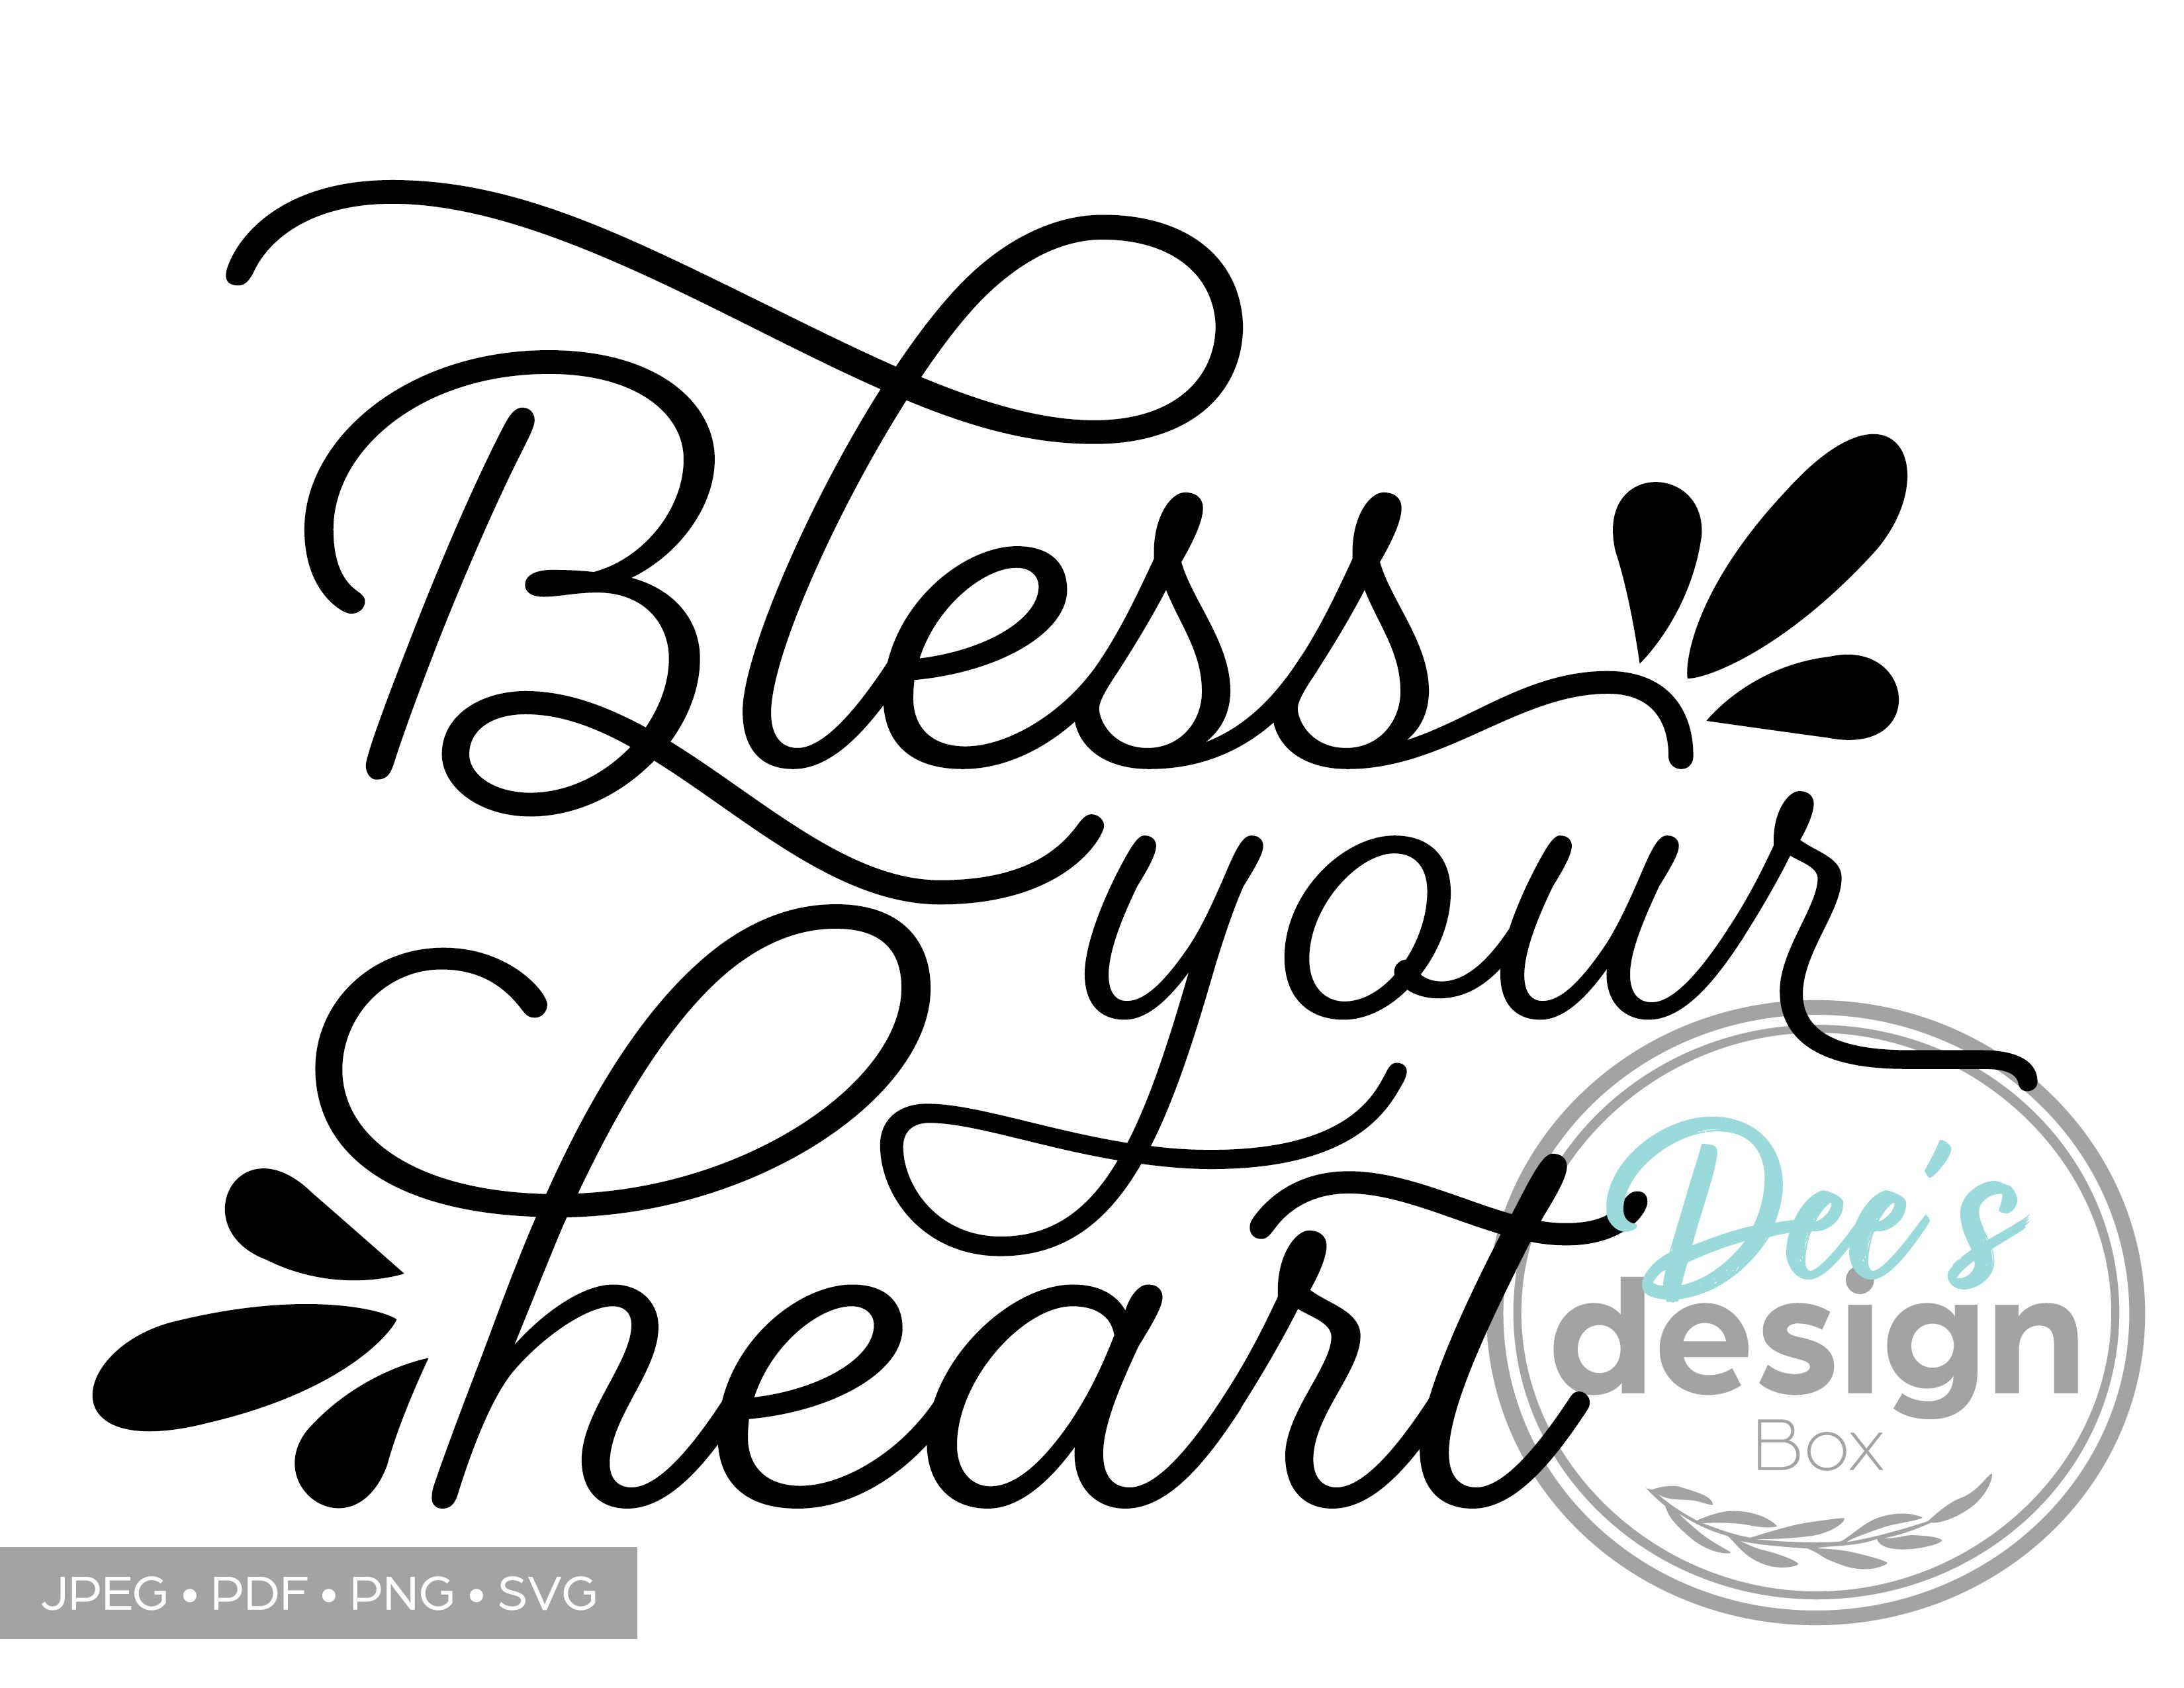 Bless Your Heart Printable Design in 2020 Printable